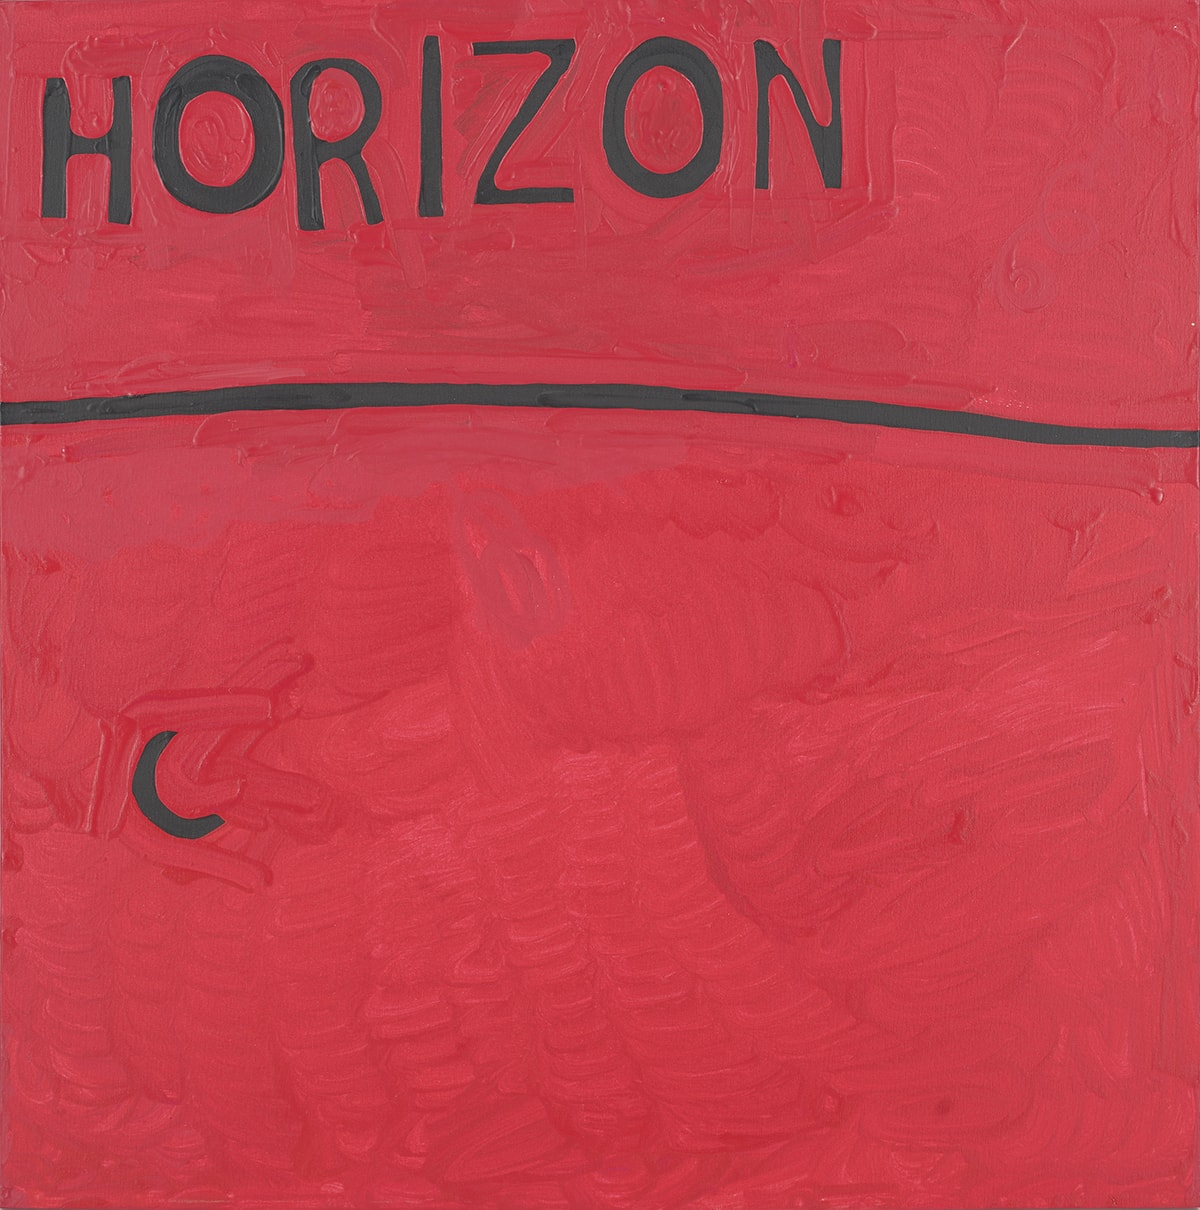 "Untitled, Marlon Mullen, 36 x 36 inches, acrylic on canvas. A square painting showing the word ""Horizon,"" a slightly curved line, and a small crescent shape, all in black on a red background. The background is entirely painted in red with obvious brush work. Paint appears to be applied with short brushstrokes and is thick in some areas. Brushstrokes can be seen especially around the letters in the word ""Horizon,"" at top left, which is painted in all caps. The letters vary in thickness and are unevenly spaced. About a third from the top of the painting a black horizontal line runs from side to side and curves slightly upward in the middle. At left below the line and about a third from the bottom of the painting is a small black crescent shape. Heavy red brushstrokes surround the shape."